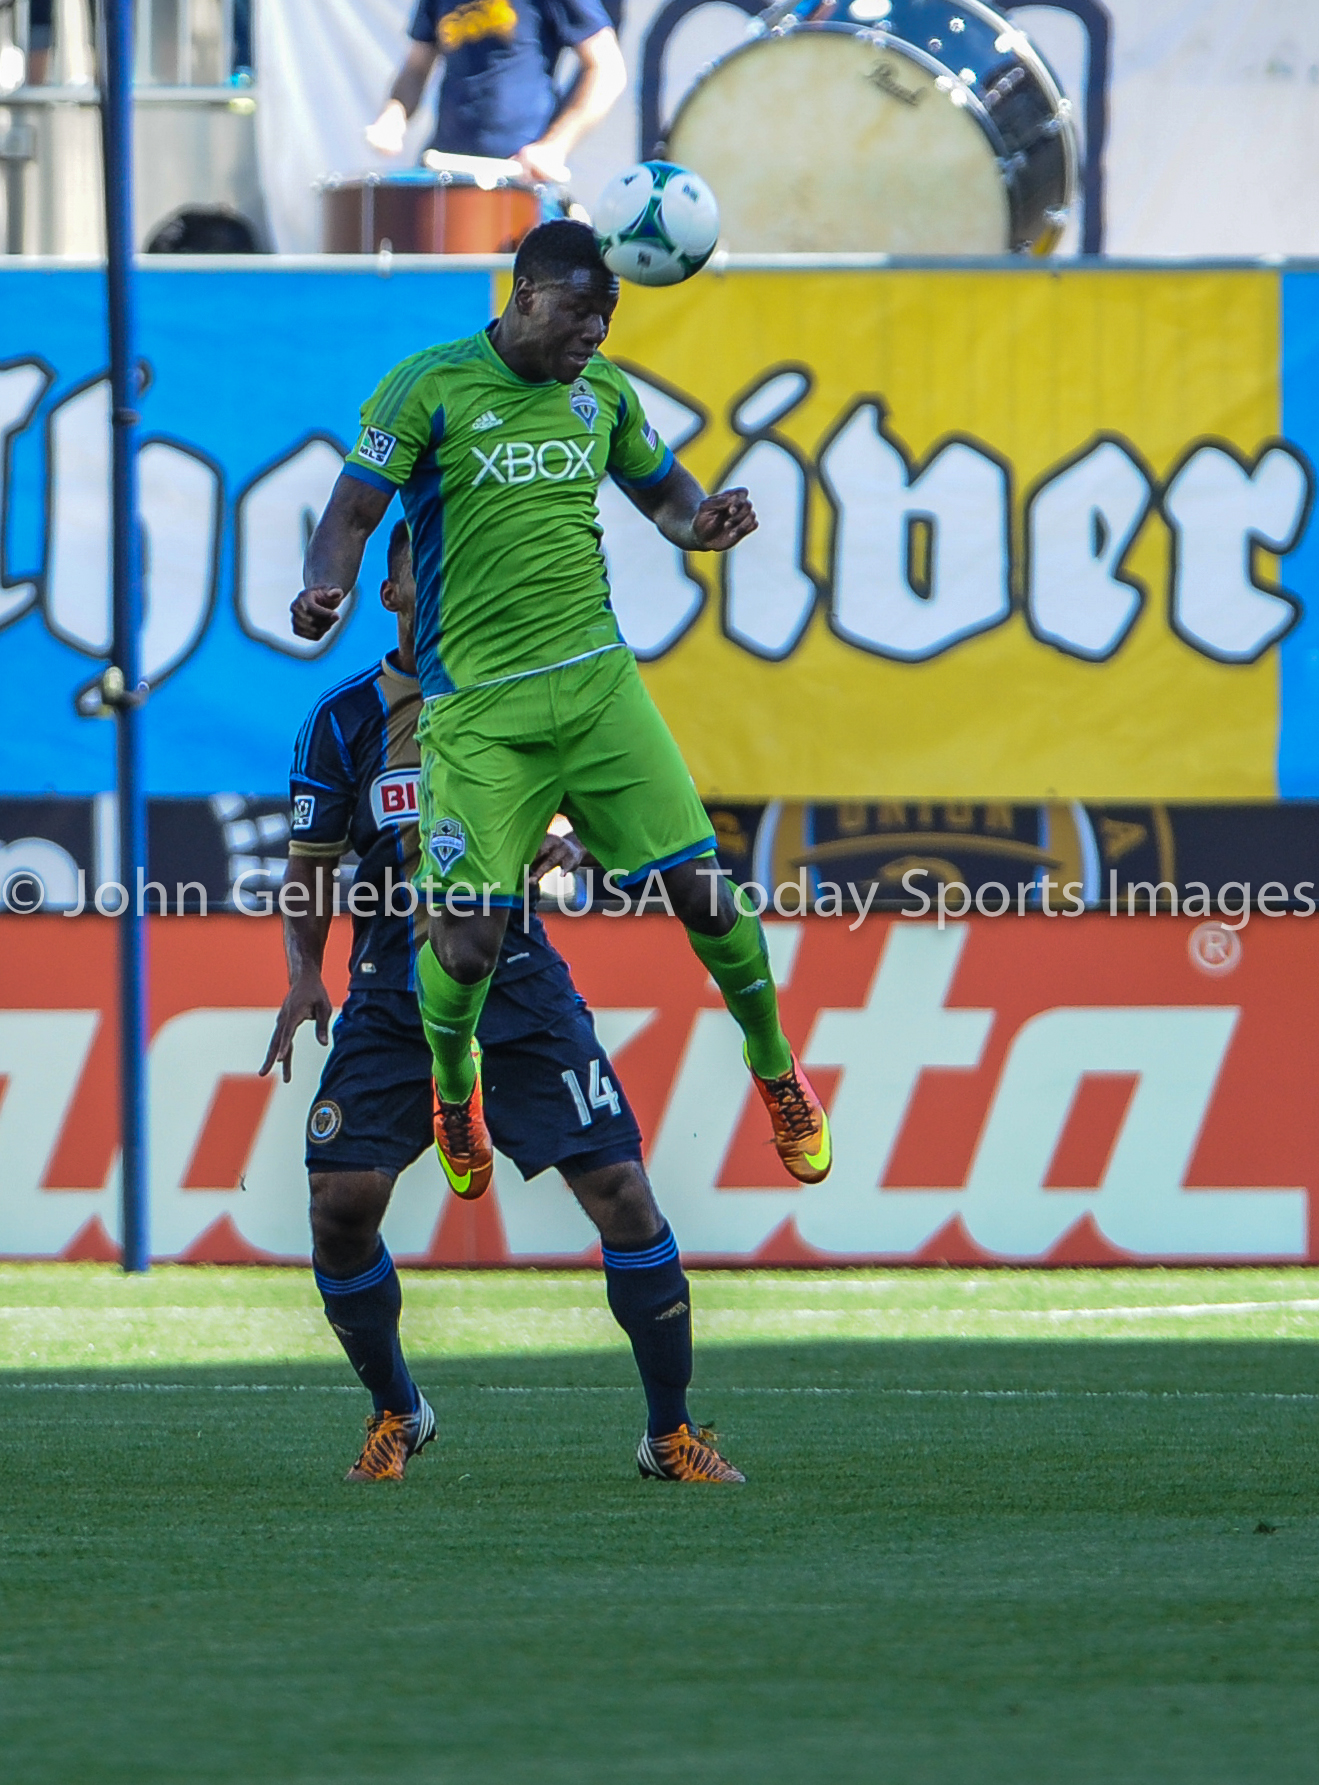 Sounders_Union_May_4_2013_JAG0305.jpg